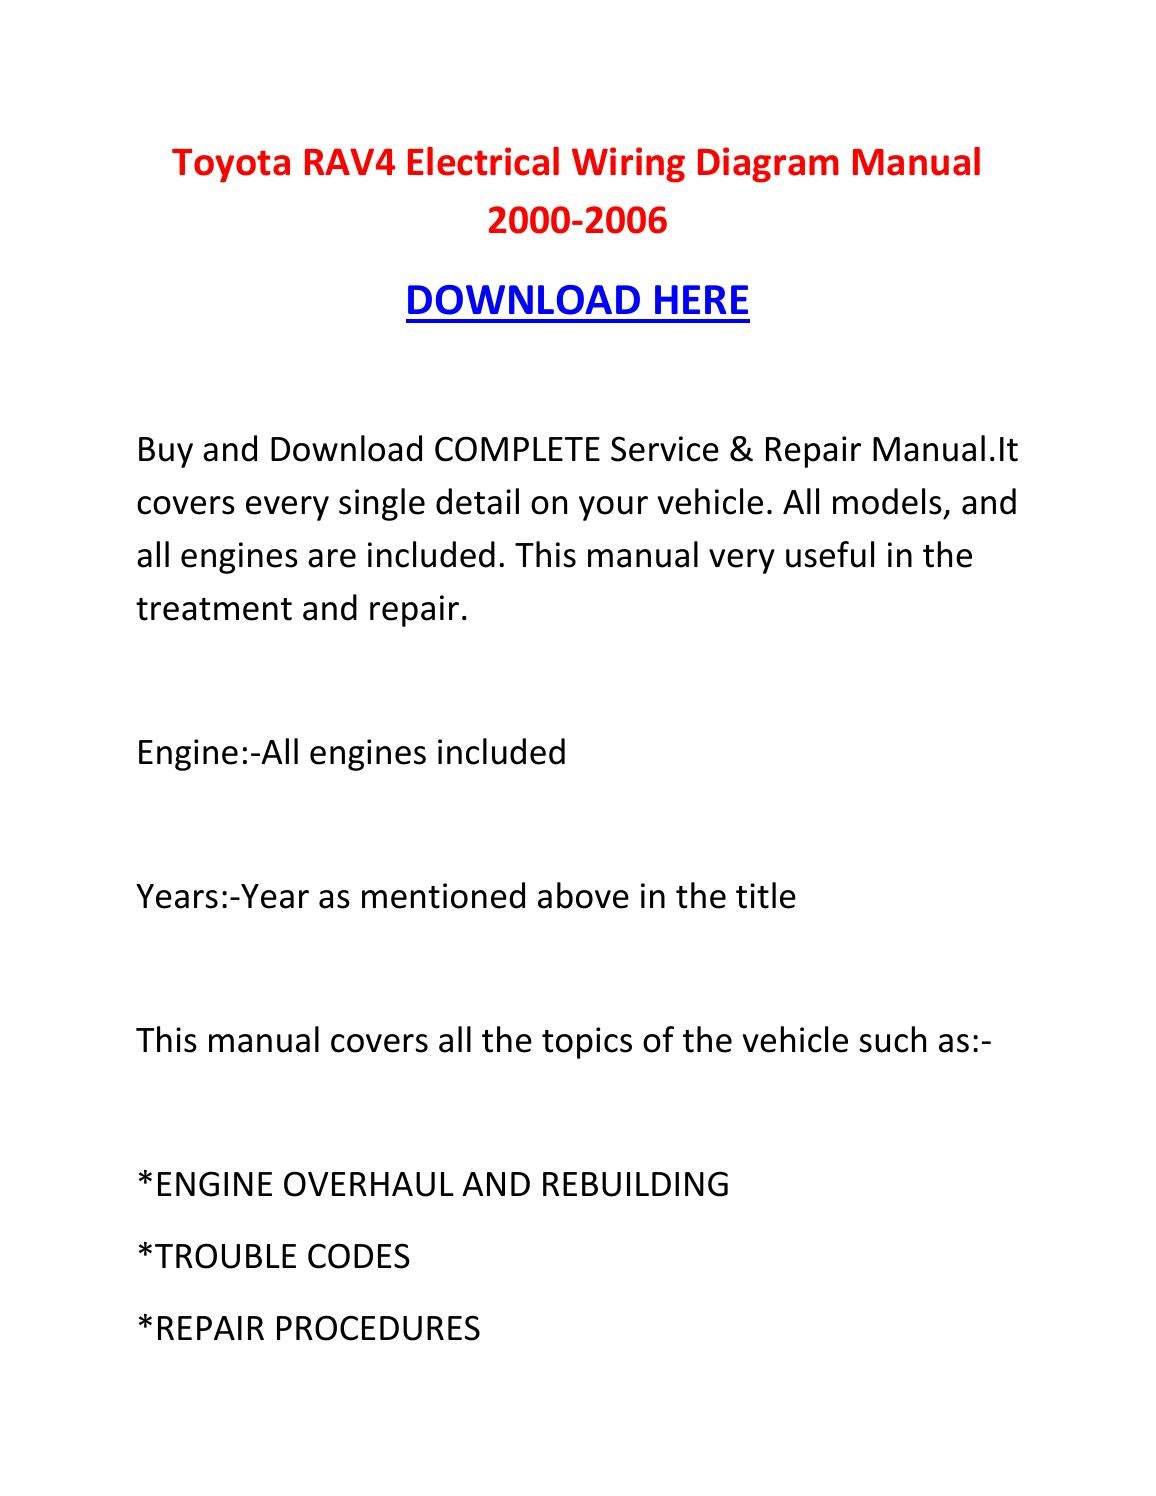 Toyota Rav4 Electrical Wiring Diagram Manual 2000 2006 By